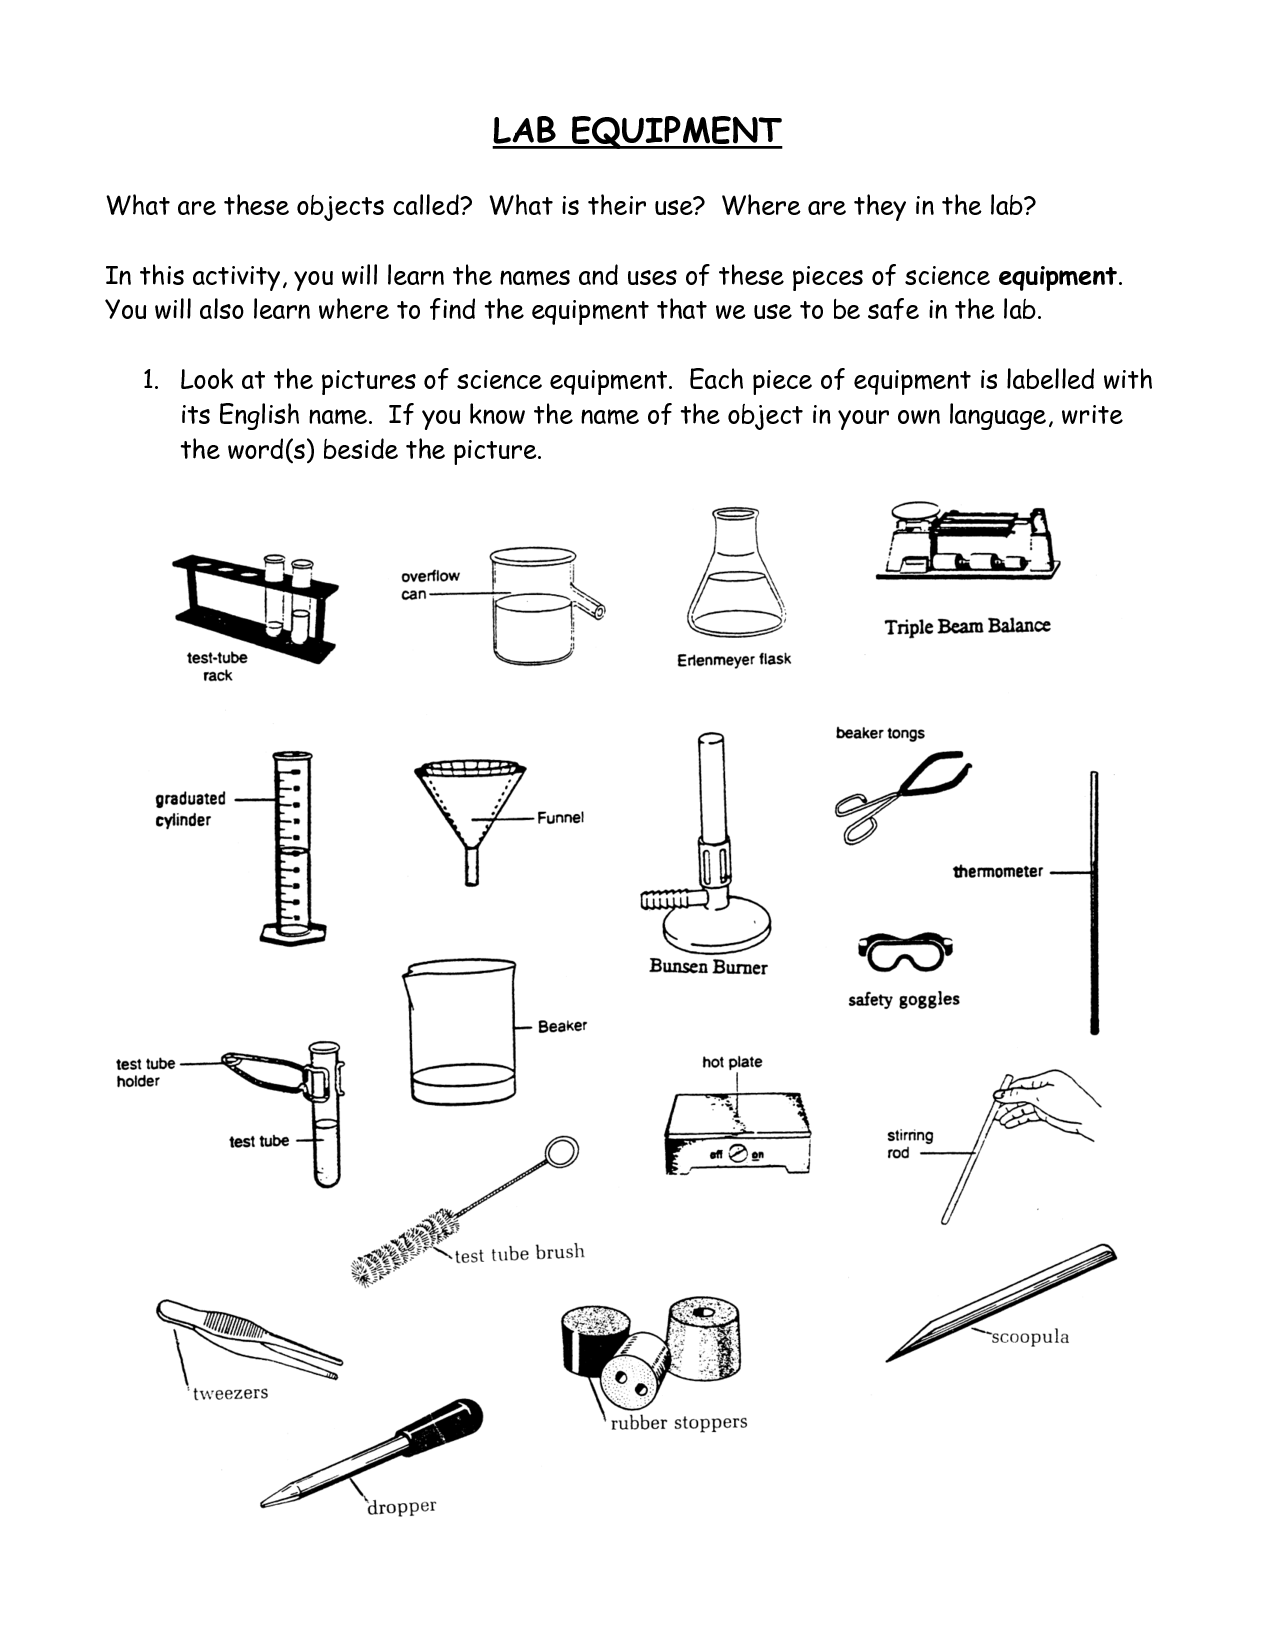 Kitchen Utensils Small Equipment Identification Worksheet Answers Kitchen Tools And Utensils